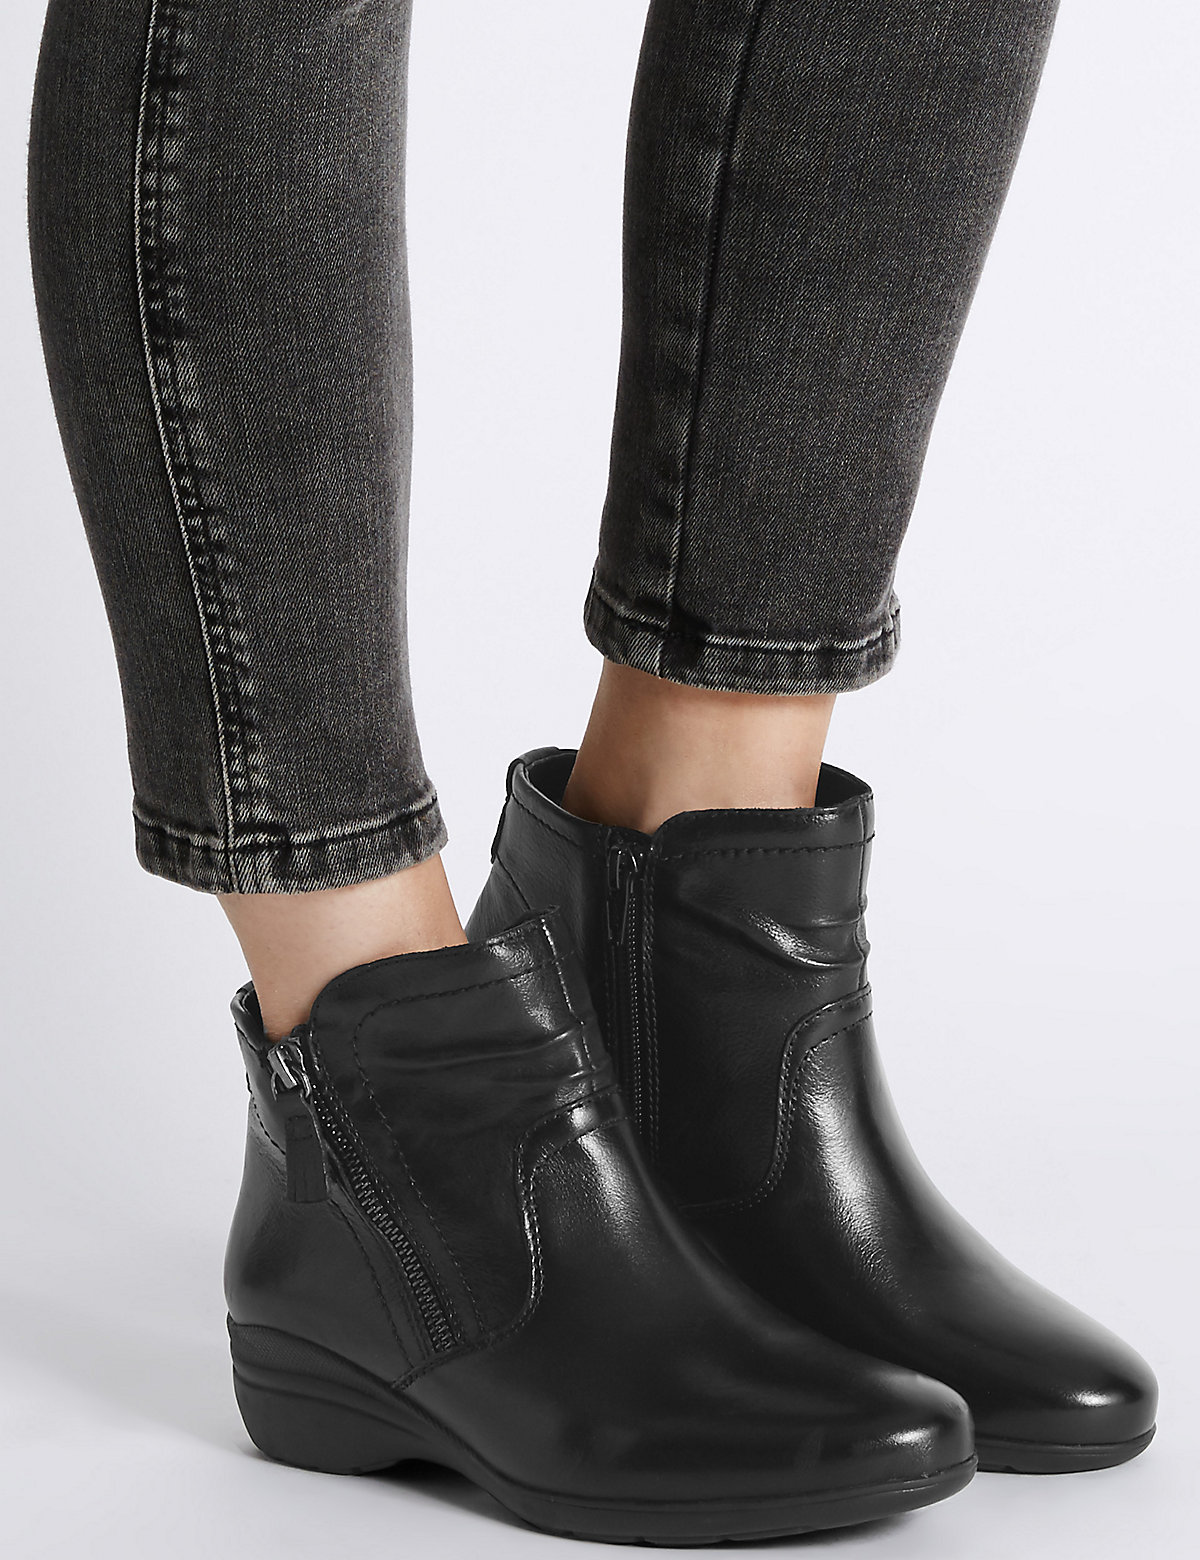 Footglove Leather Wedge Ankle Boots with Footglove